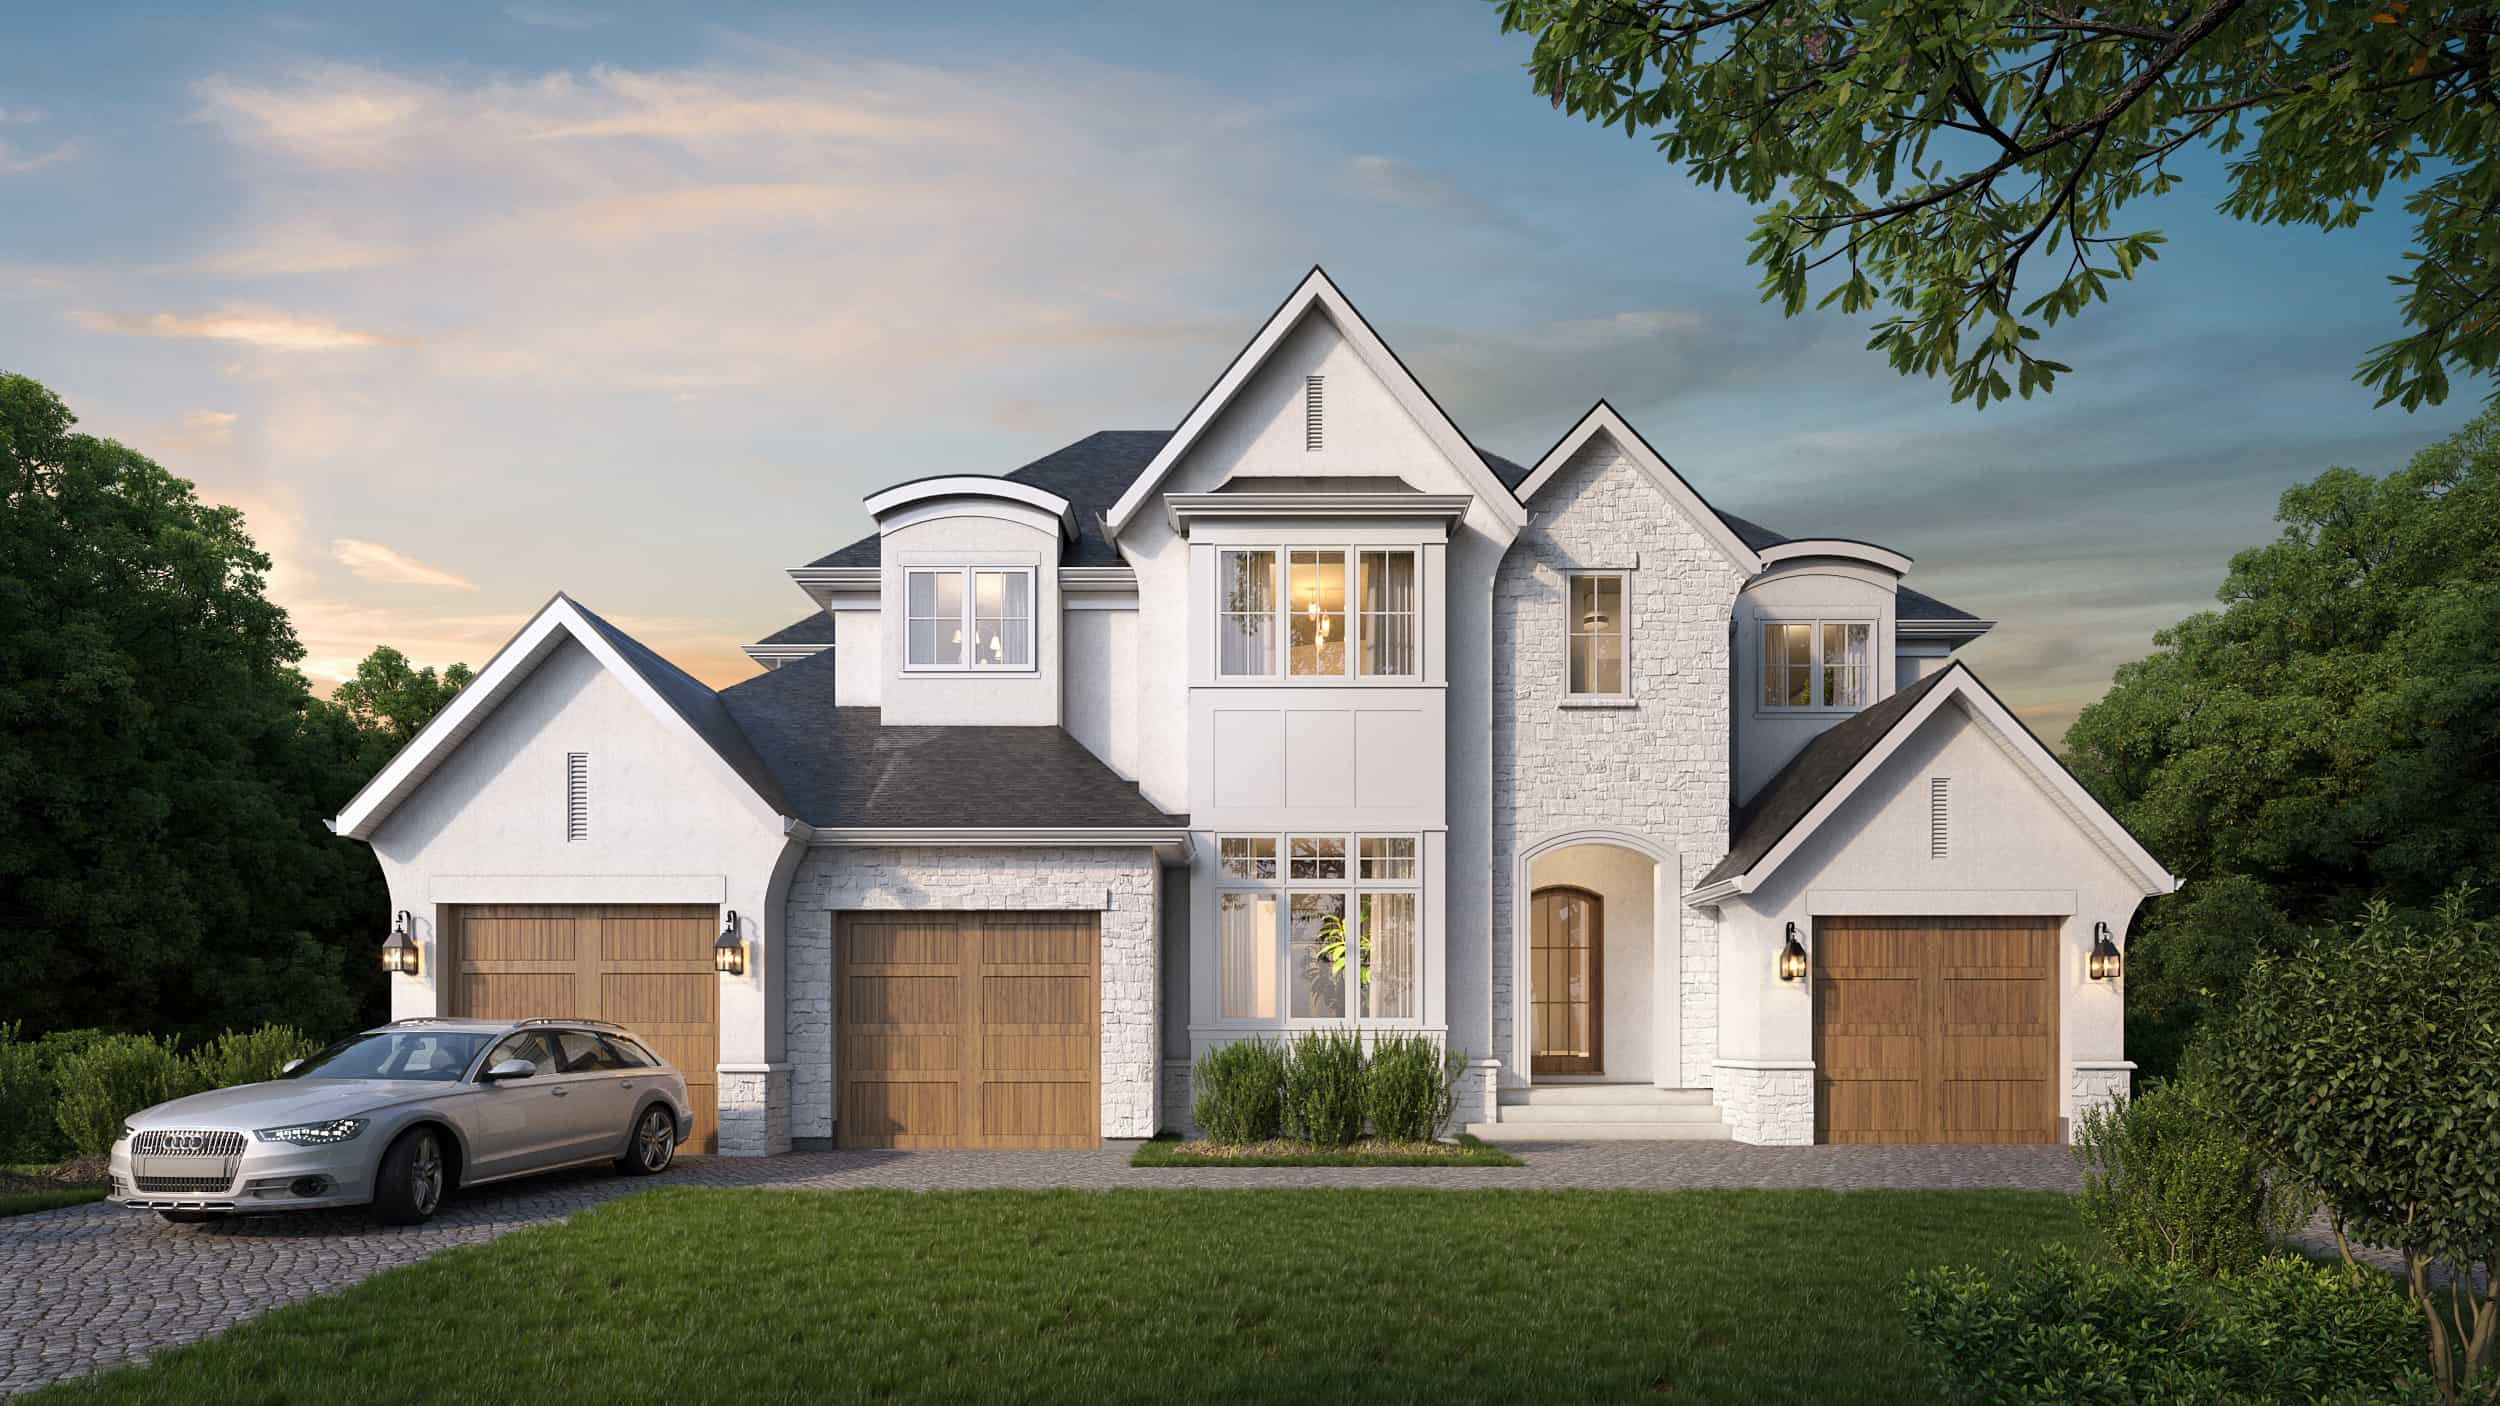 Edelweiss English Manor residential architecture